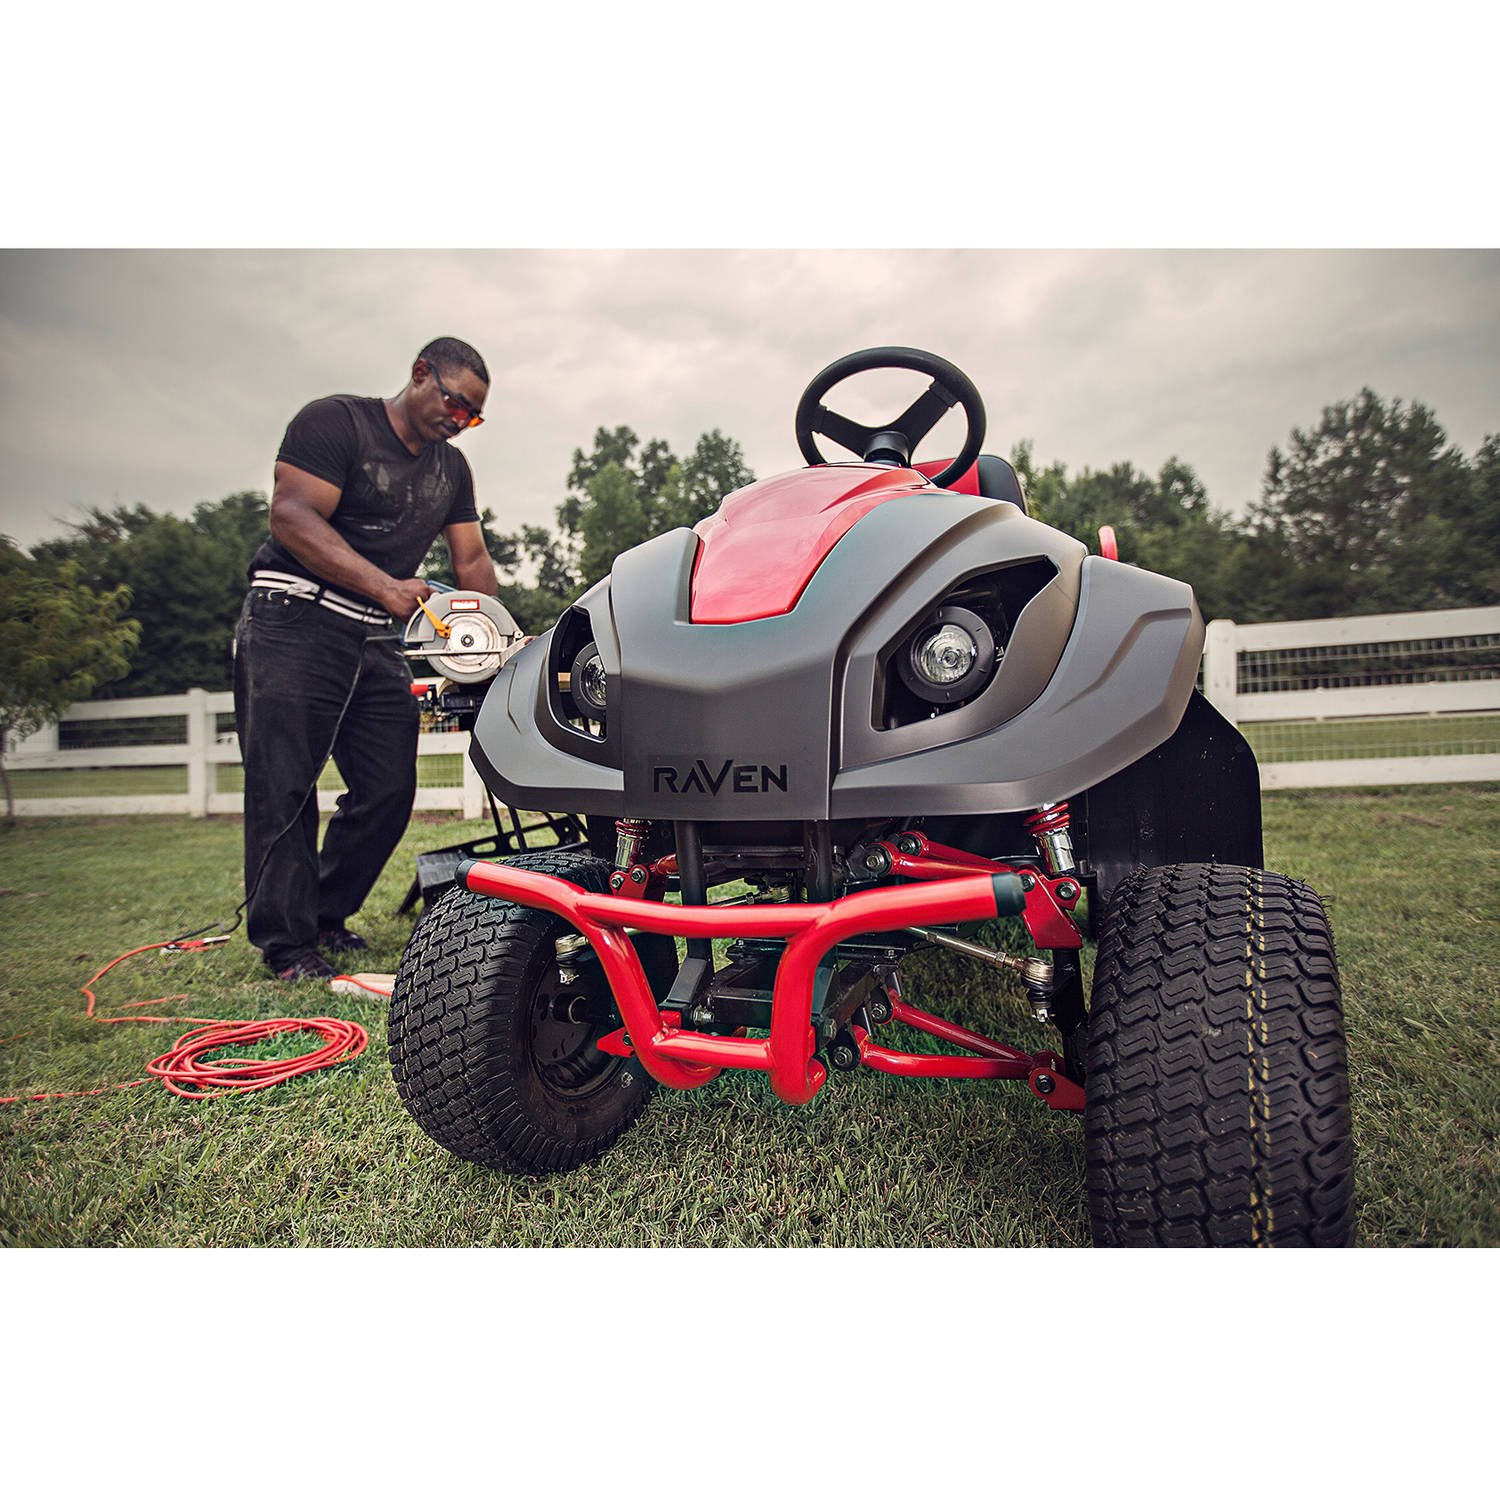 Raven 7100 Hybrid Riding Lawnmower Generator And Utility Vehicle